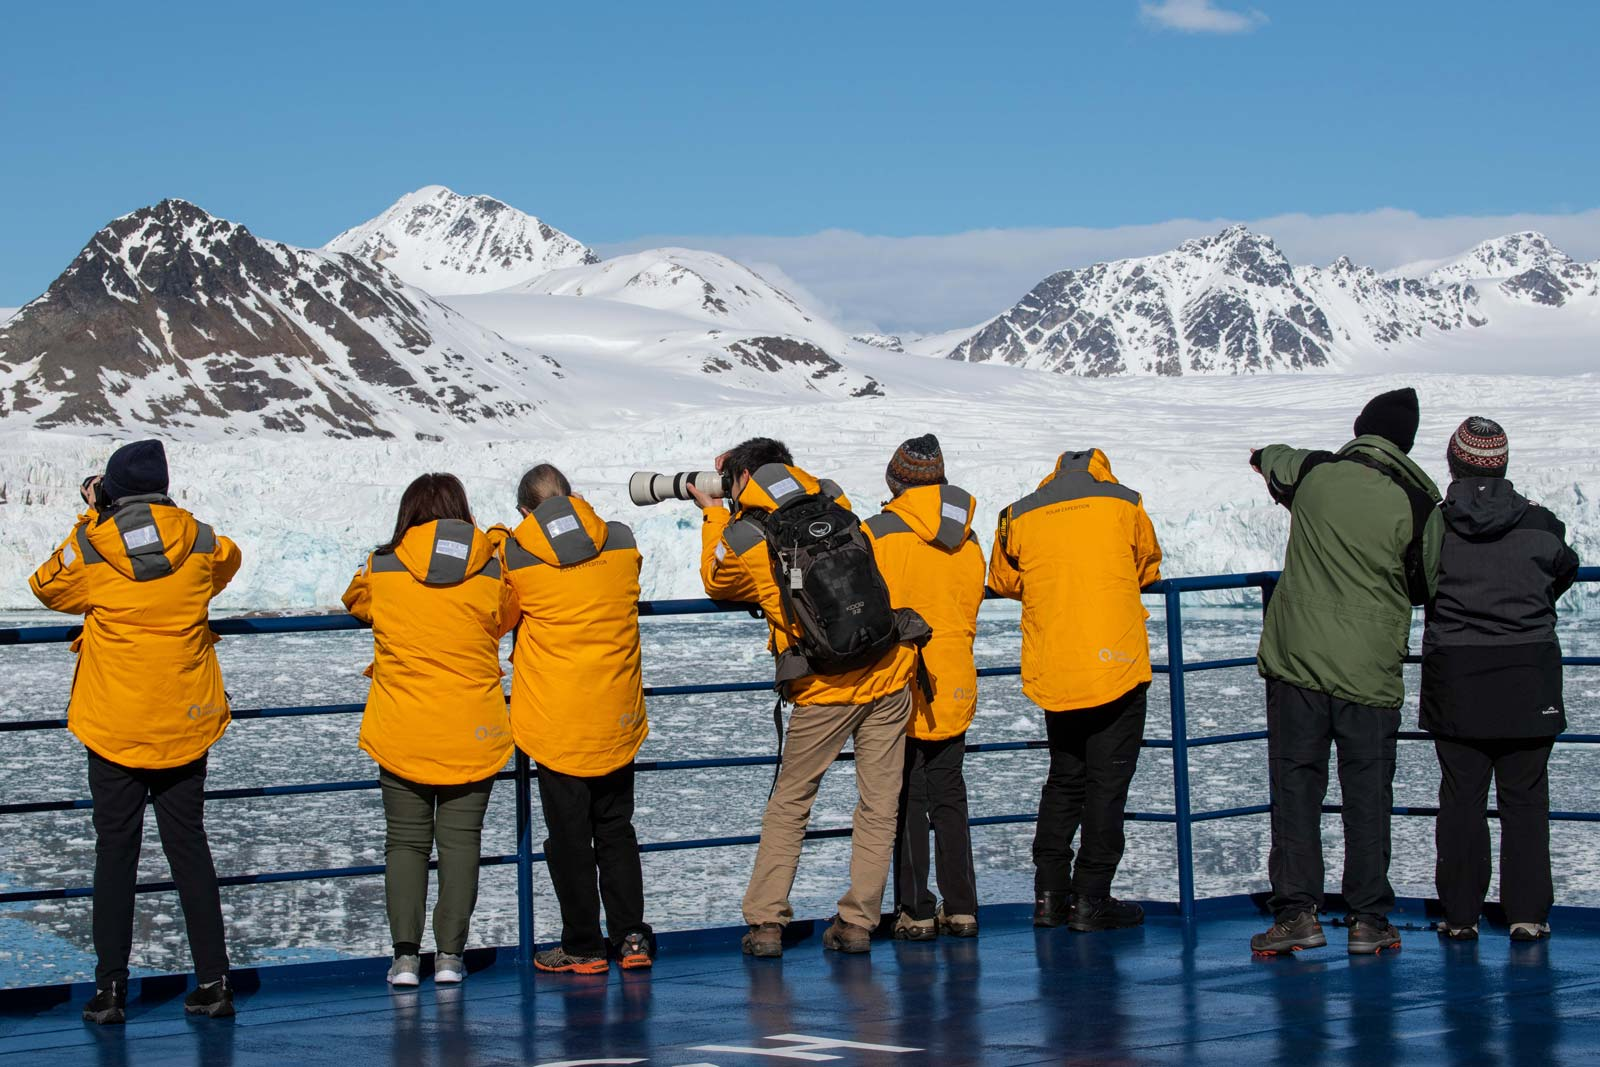 On Deck Aboard An Expedition Cruise In The High Arctic